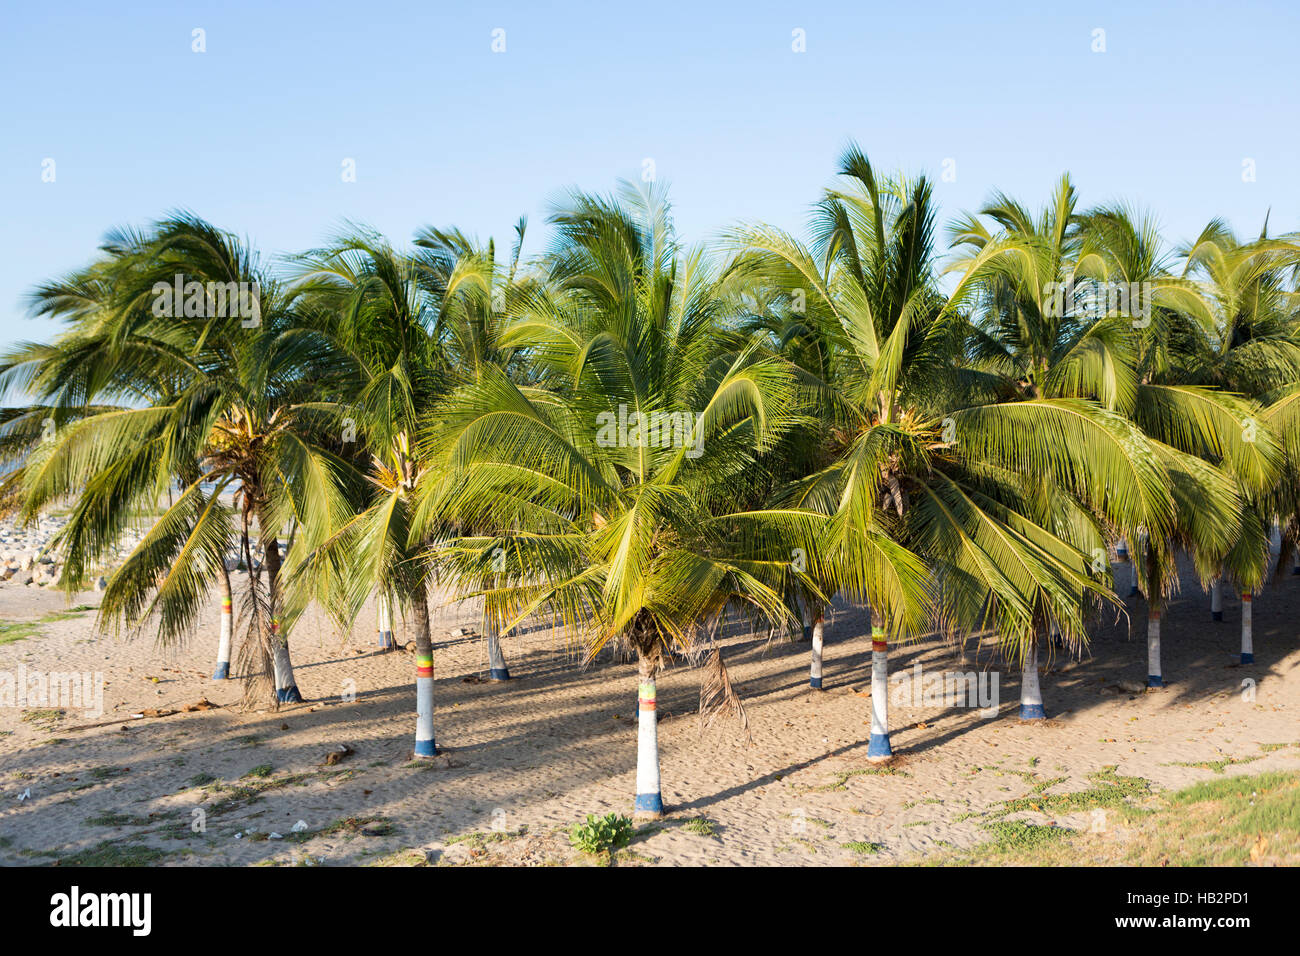 Colored palm trees and beach in Colombia Stock Photo: 127295309 - Alamy